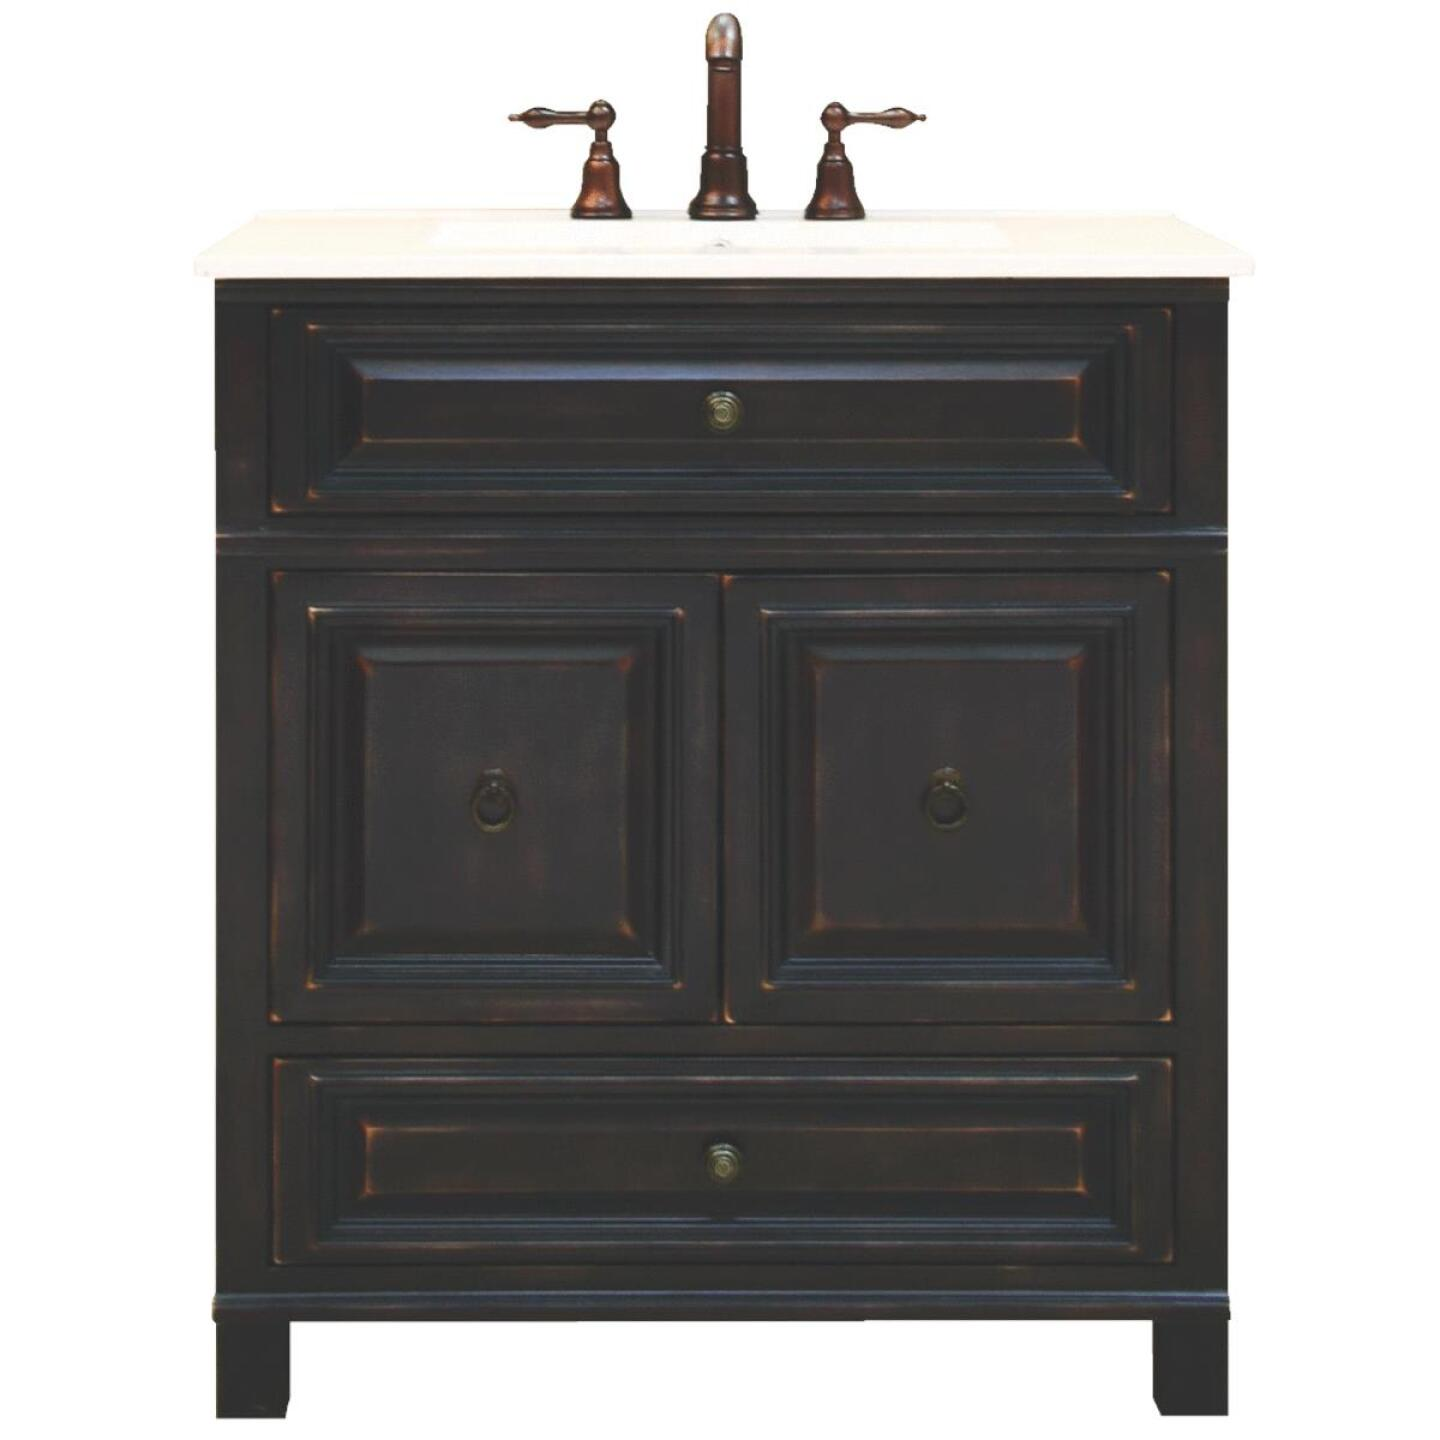 Sunny Wood Barton Hill Black Onyx 30 In. W x 34 In. H x 21 In. D Vanity Base, 2 Door/1 Drawer Image 251